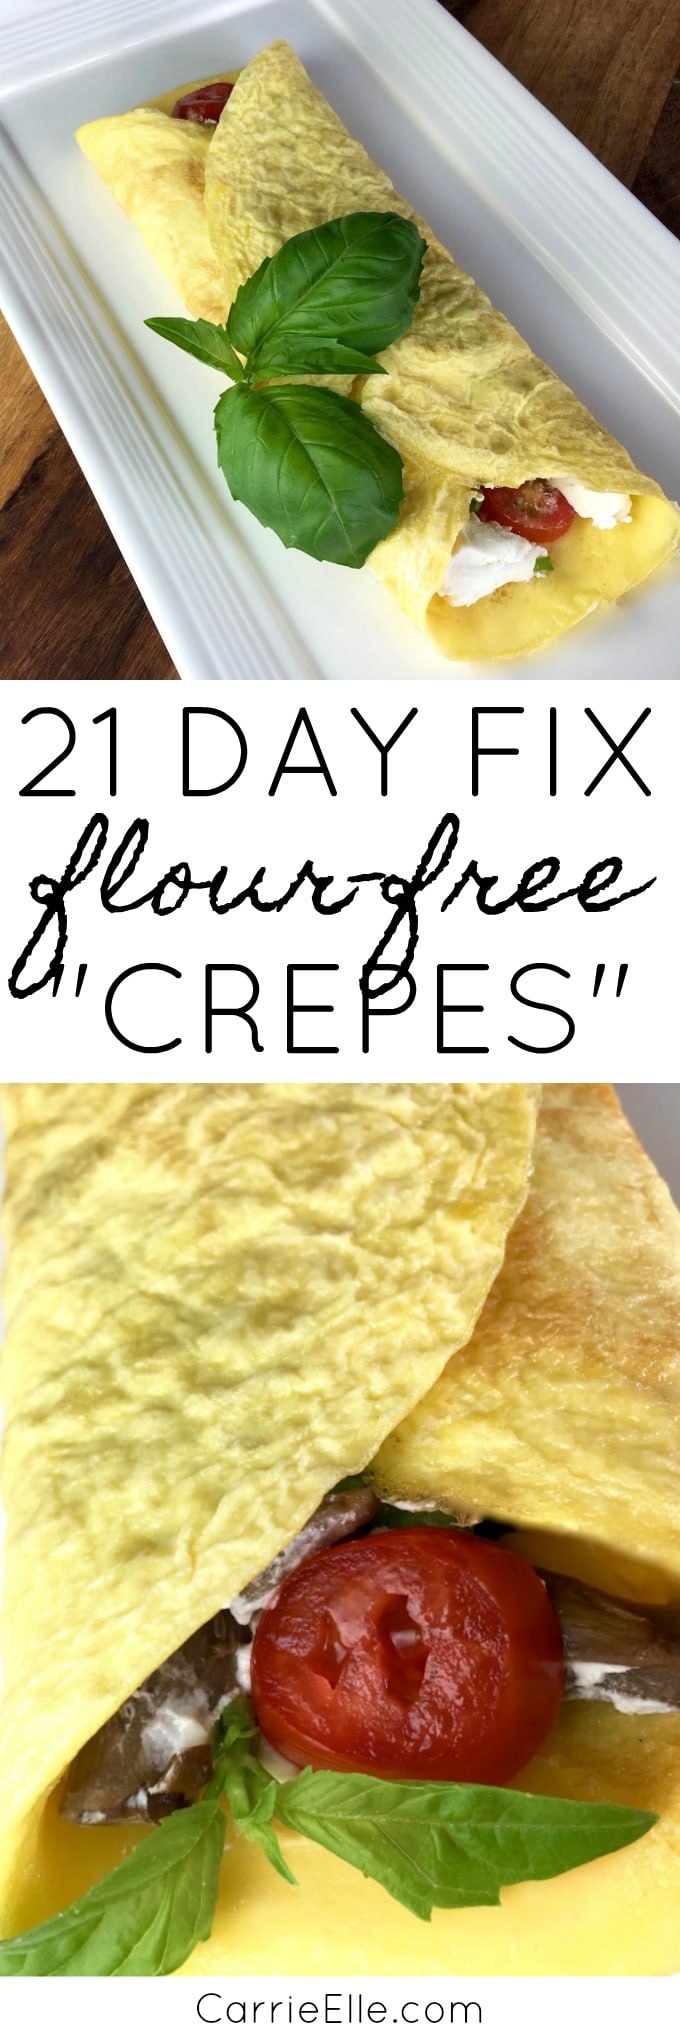 21 Day Fix Crepes